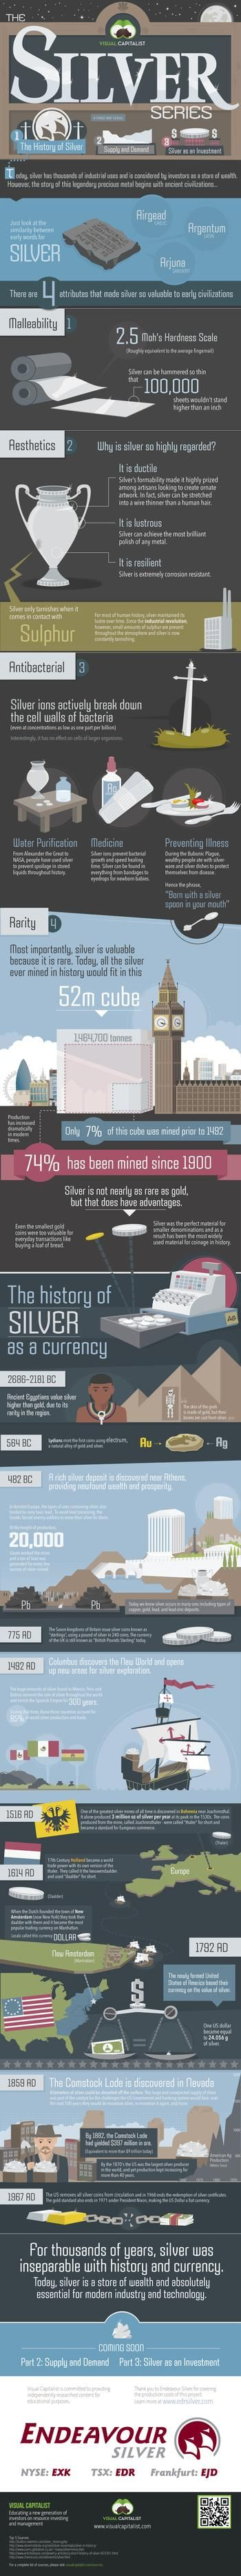 218 best Sustainable Mining images on Pinterest | Student-centered ...